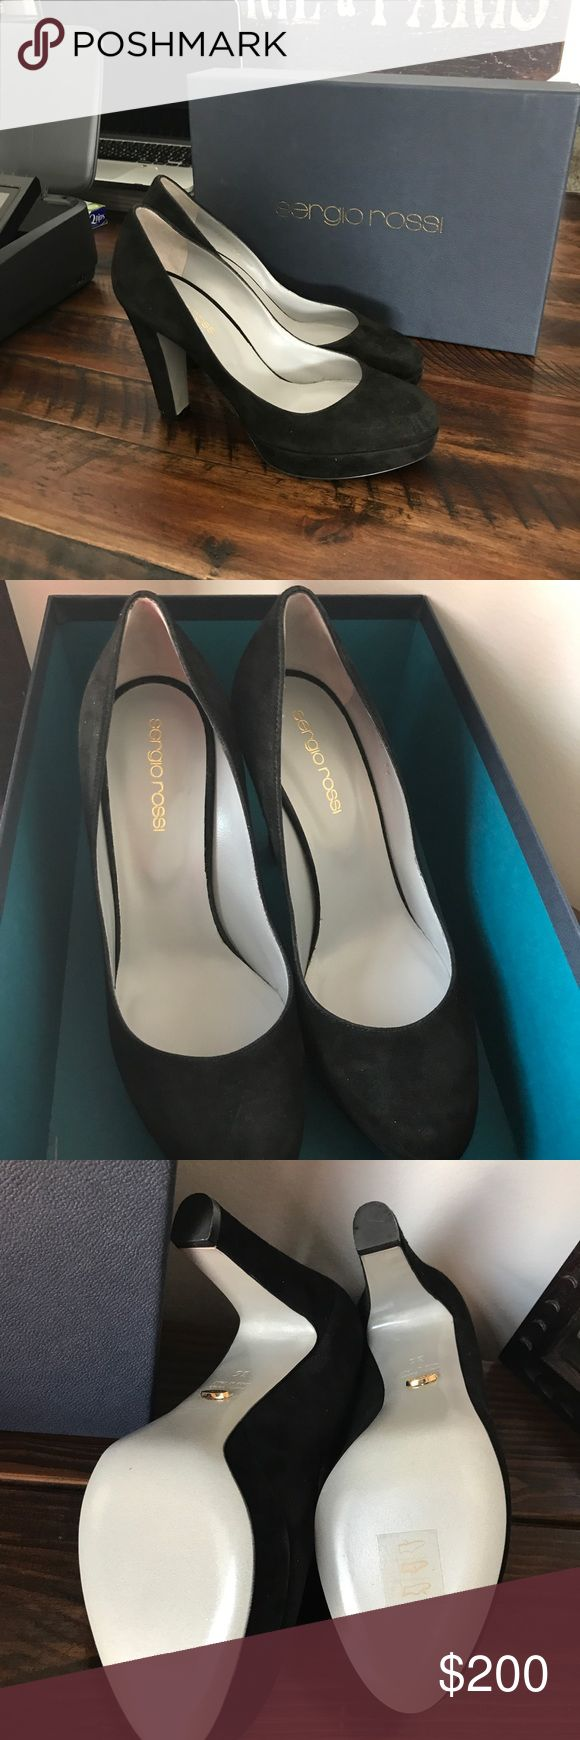 🌺Sergio Rossi pumps🌺 Beautiful suede 31/4 covered heel Sergio Rossi Shoes